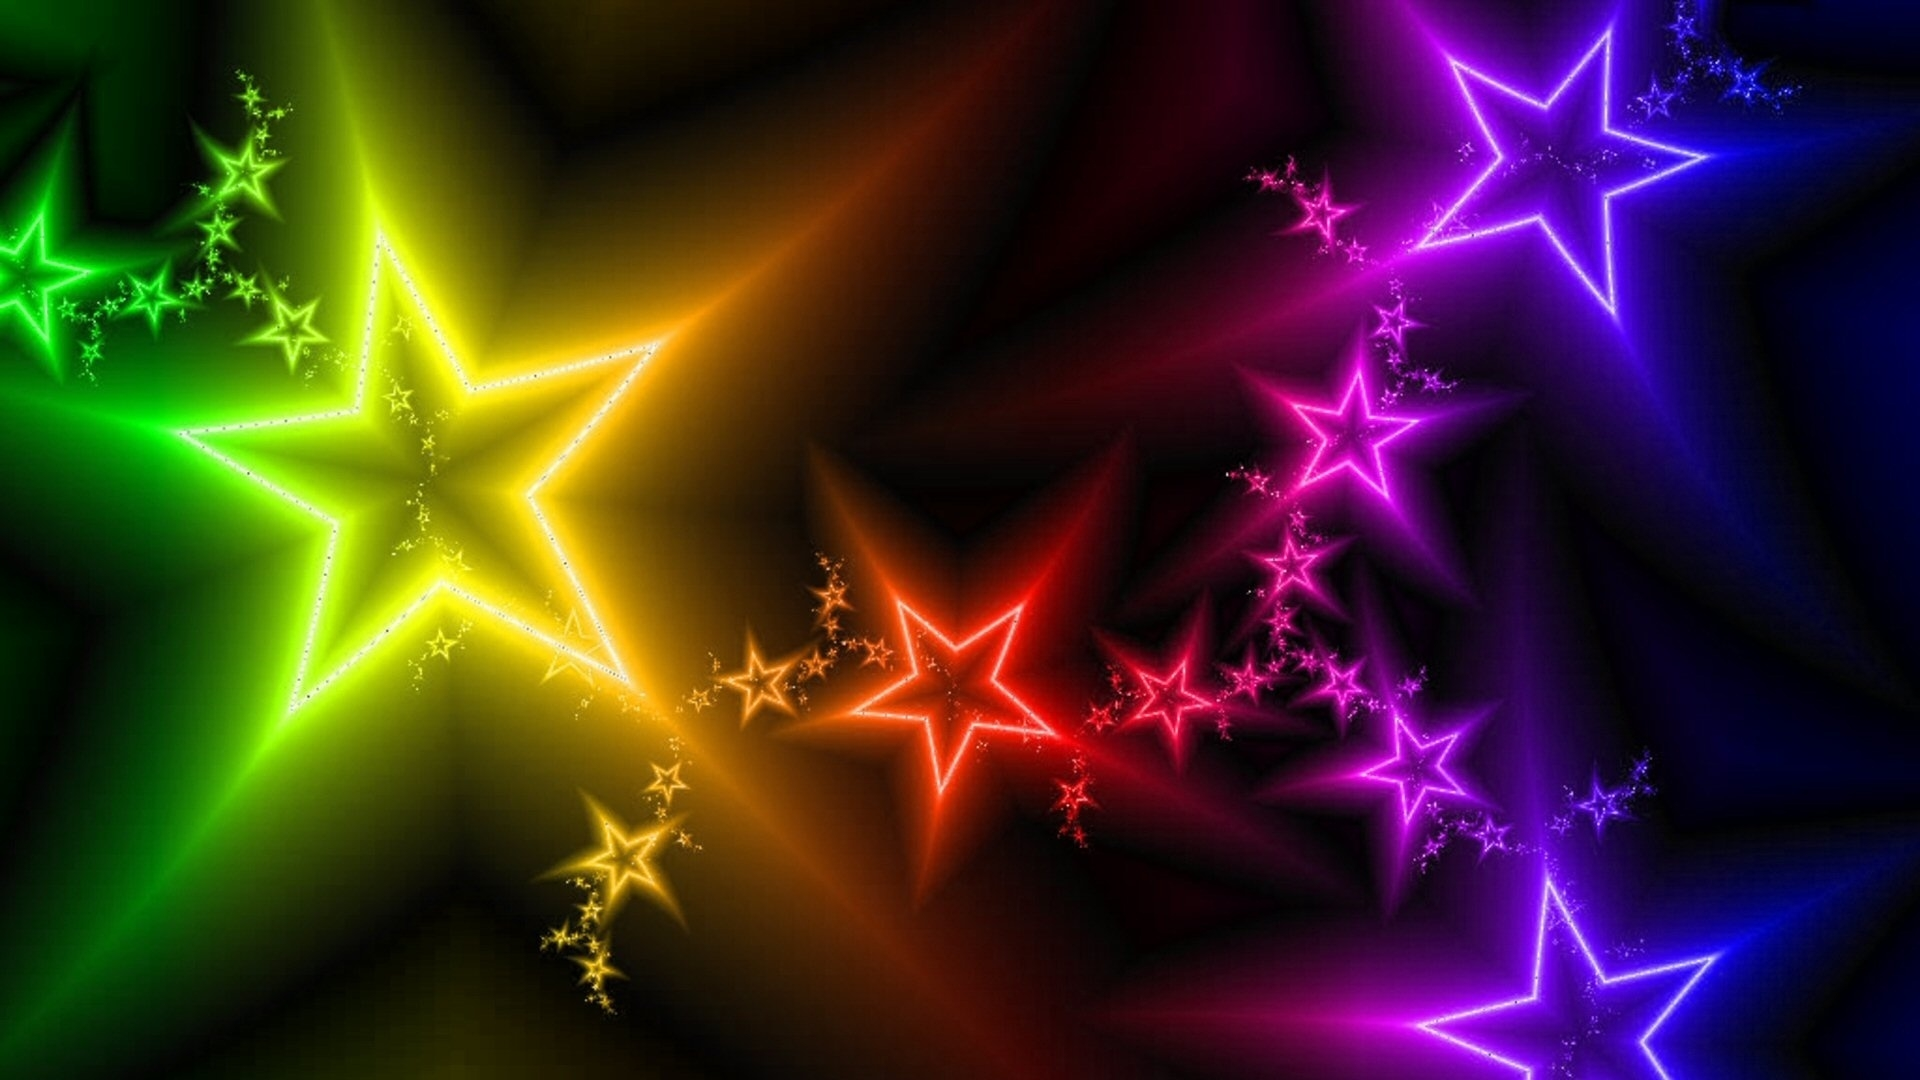 Colorful Stars Wallpapers wallpaper Colorful Stars Wallpapers hd 1920x1080